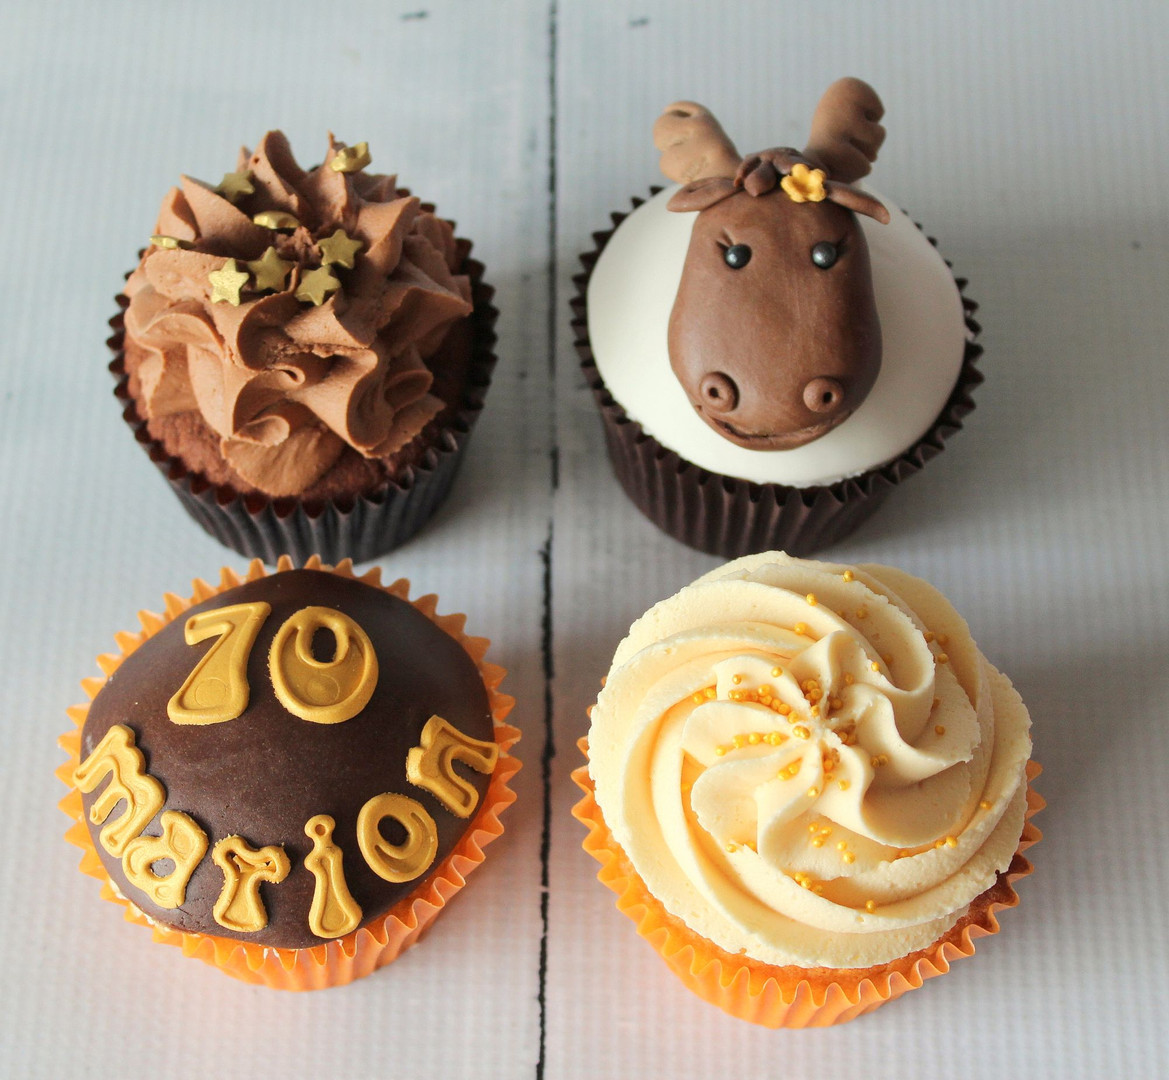 Horse 70th Birthday Cupcakes.jpg